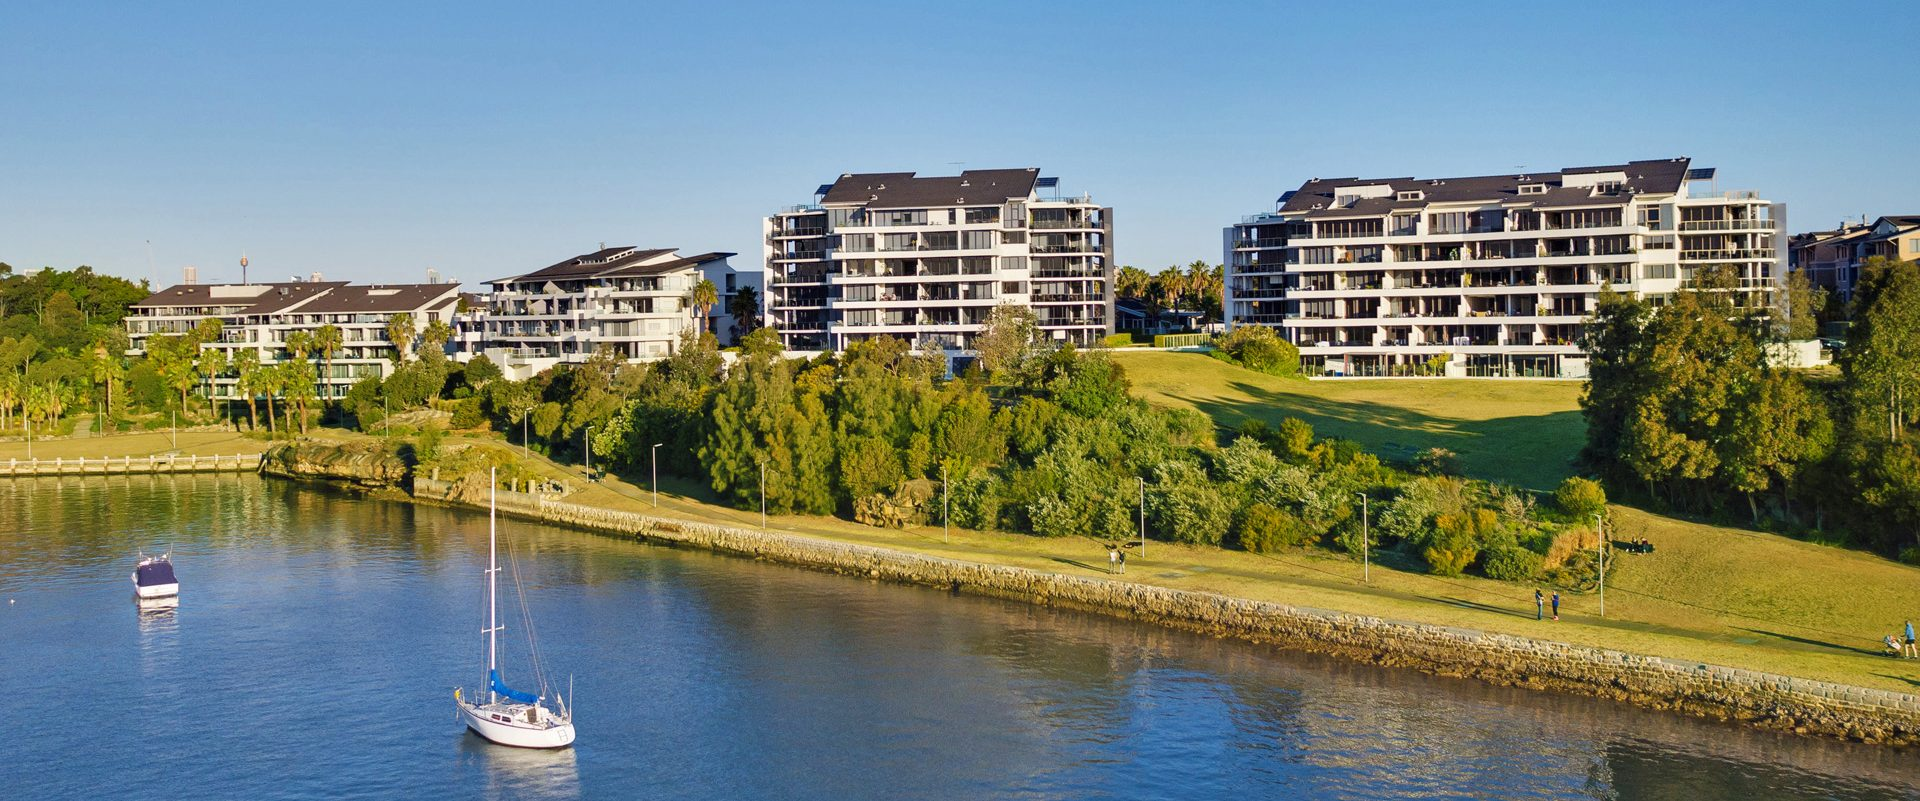 Apartments for Rent Chiswick | Meriton